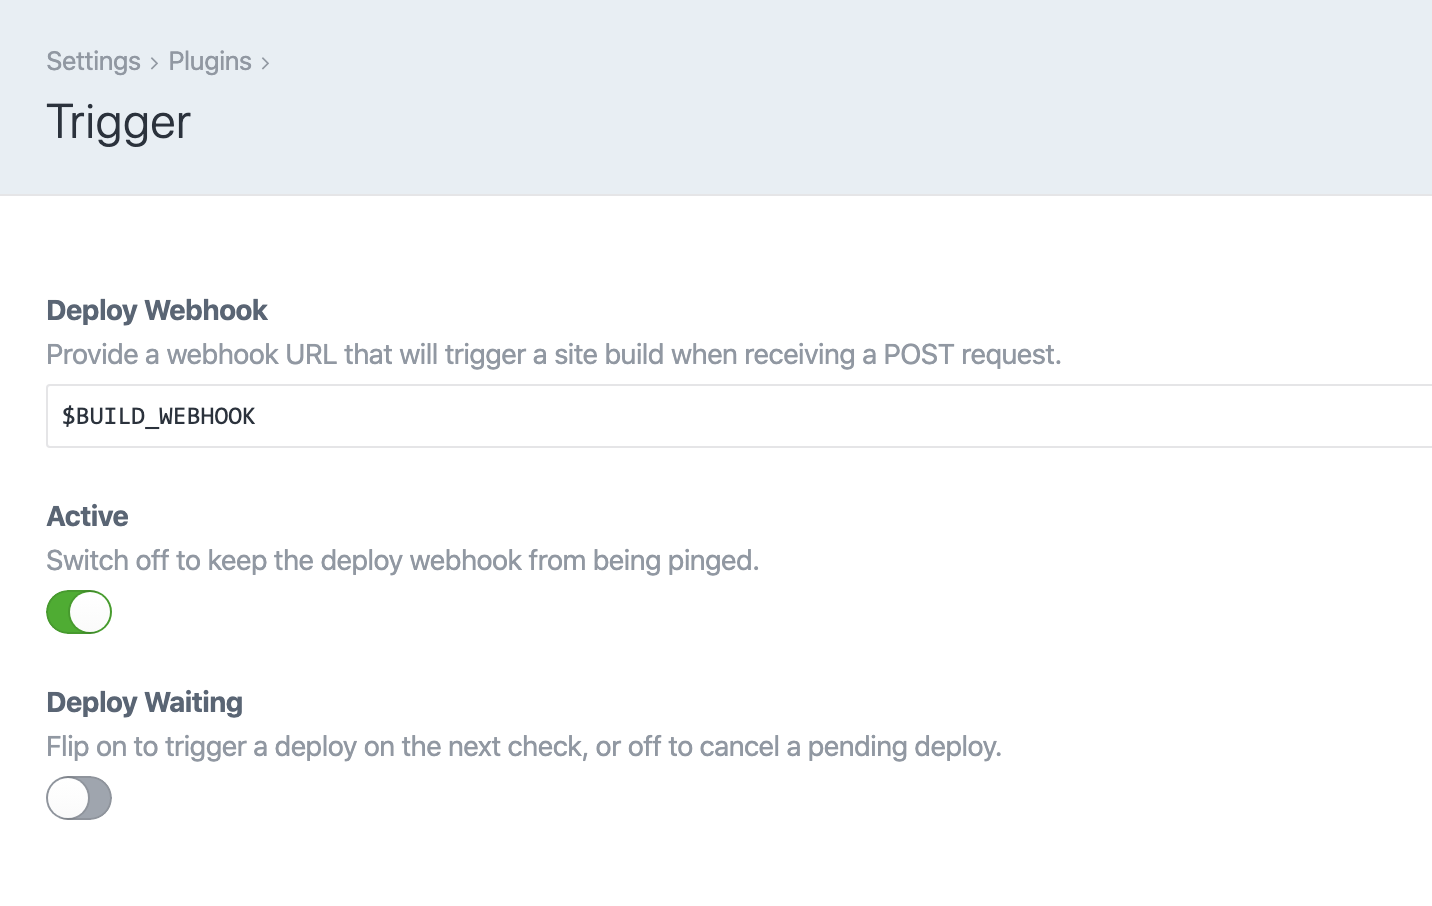 Trigger Craft CMS plugin settings: Deploy Webhook field, Active switch, and Deploy Waiting switch